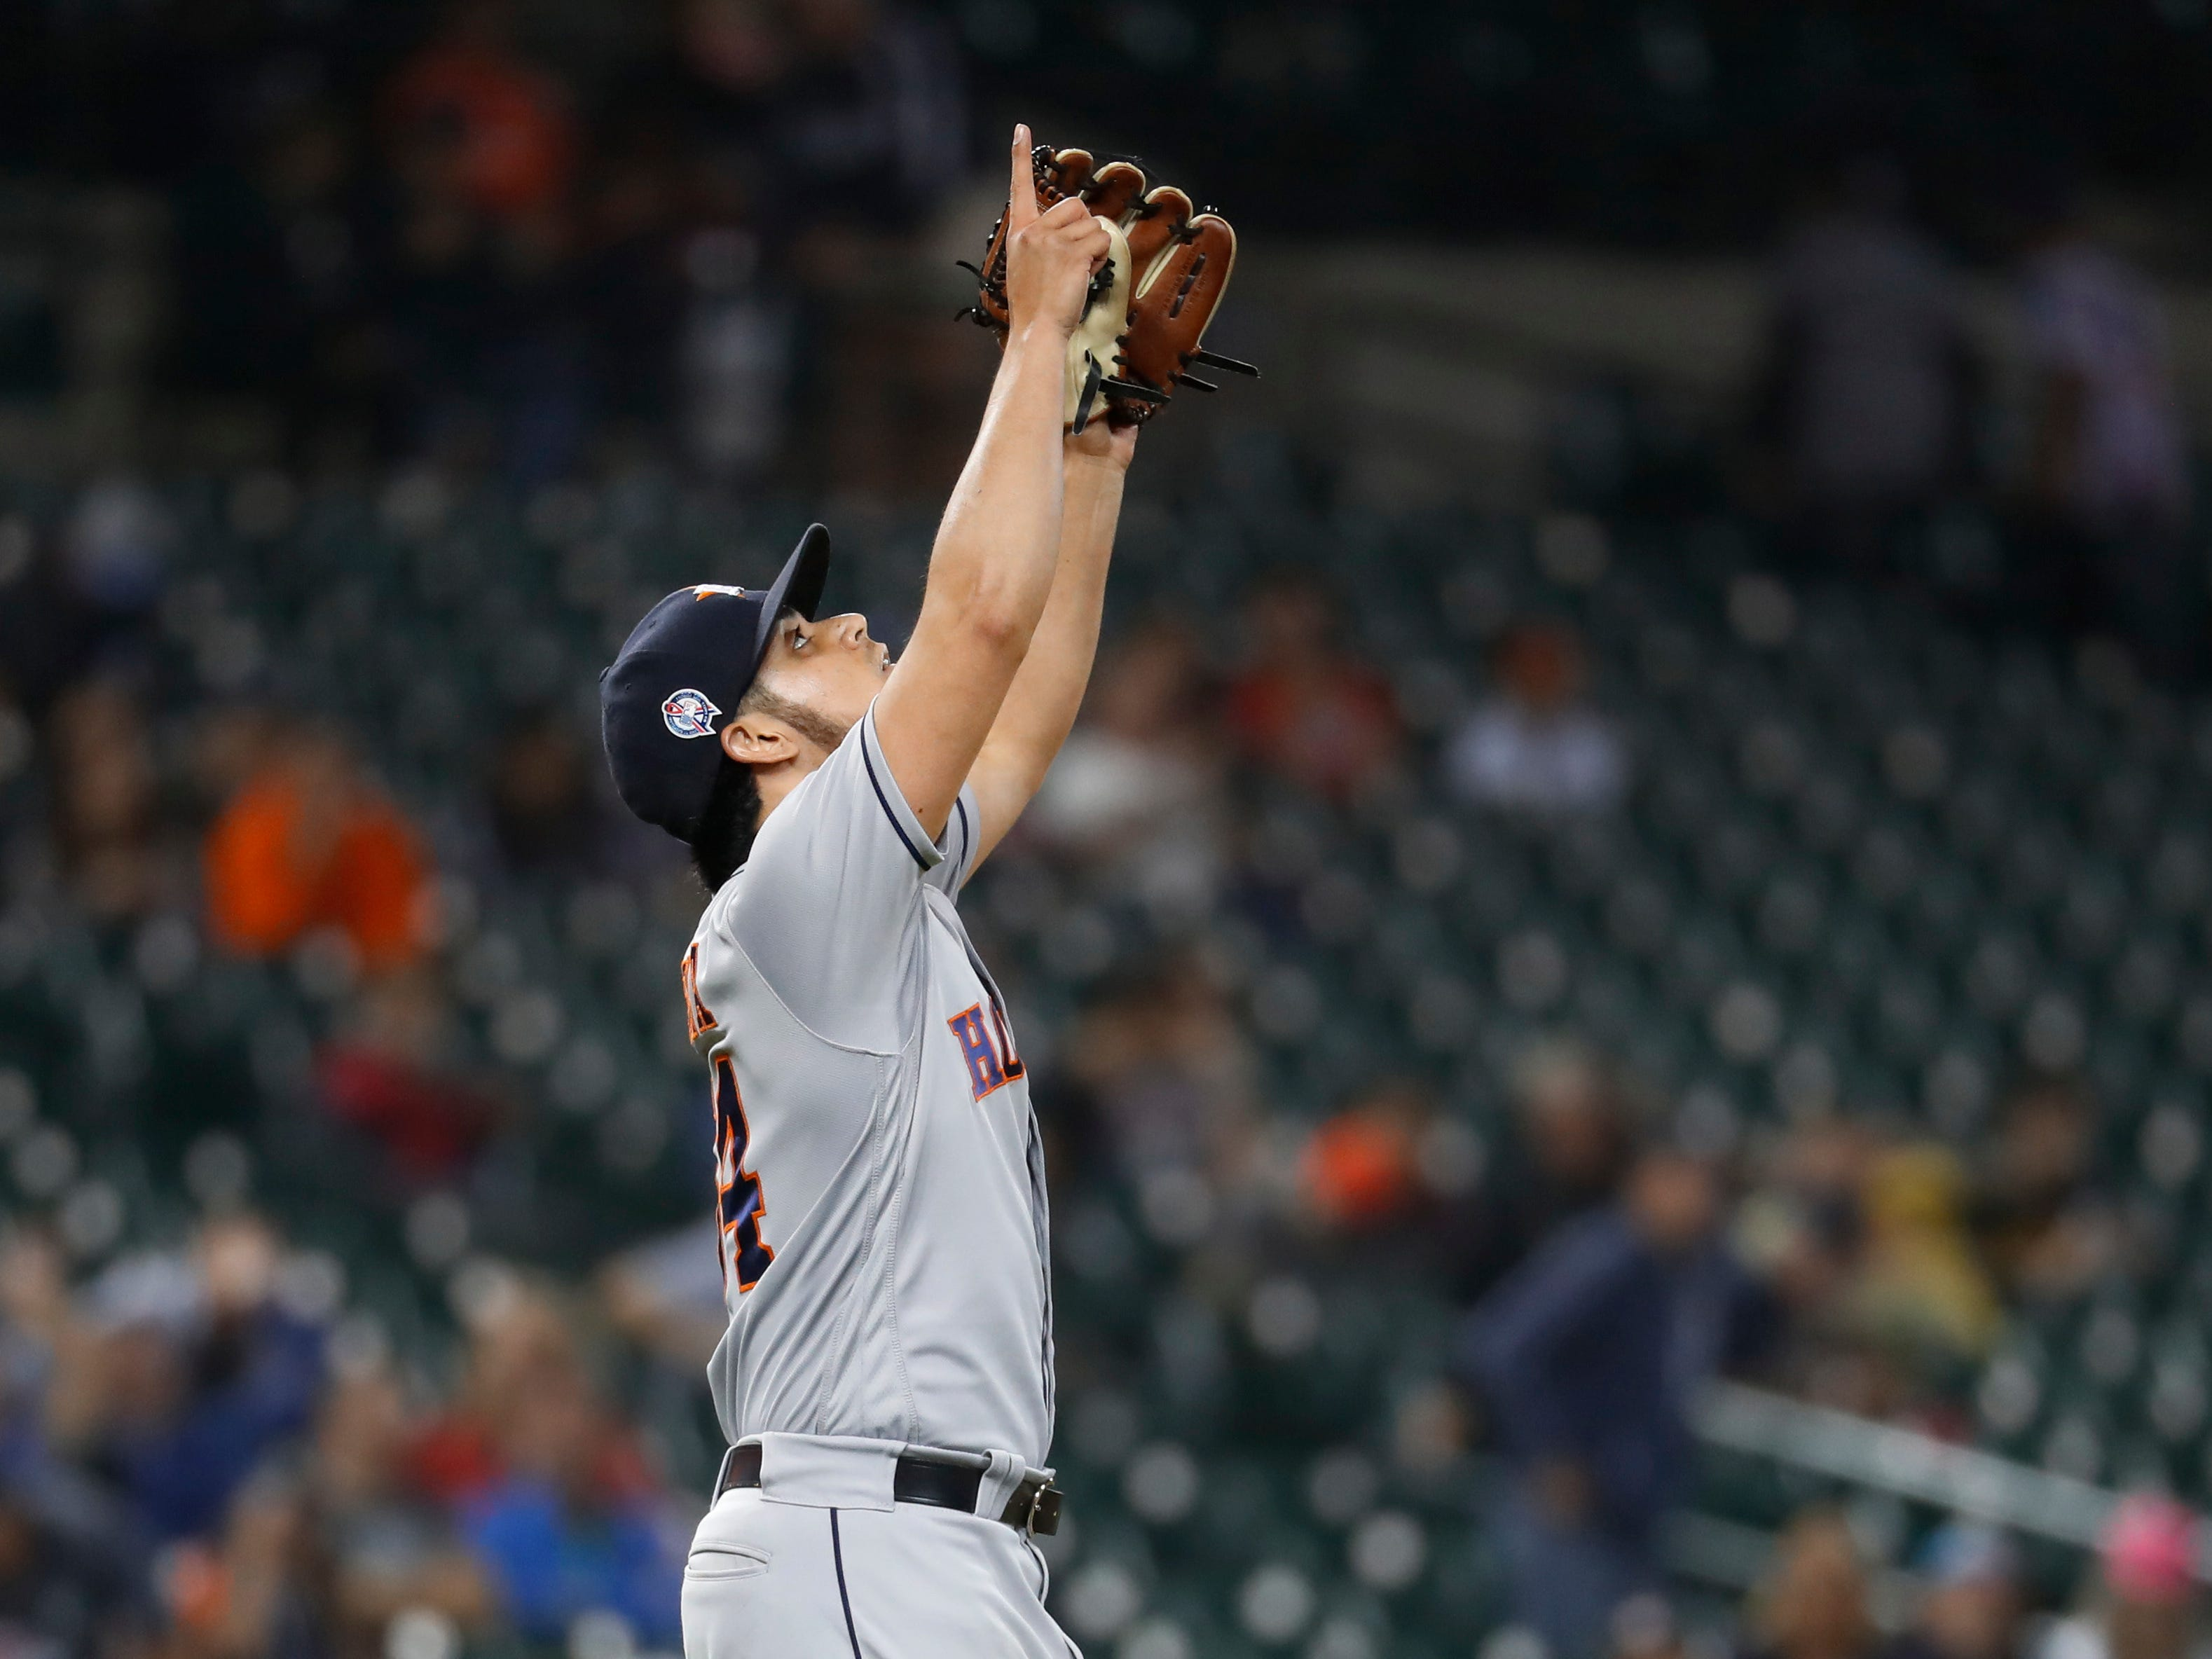 Houston Astros relief pitcher Roberto Osuna celebrates the final out in the ninth inning of a baseball game against the Detroit Tigers in Detroit, Tuesday, Sept. 11, 2018. Houston won 5-4.